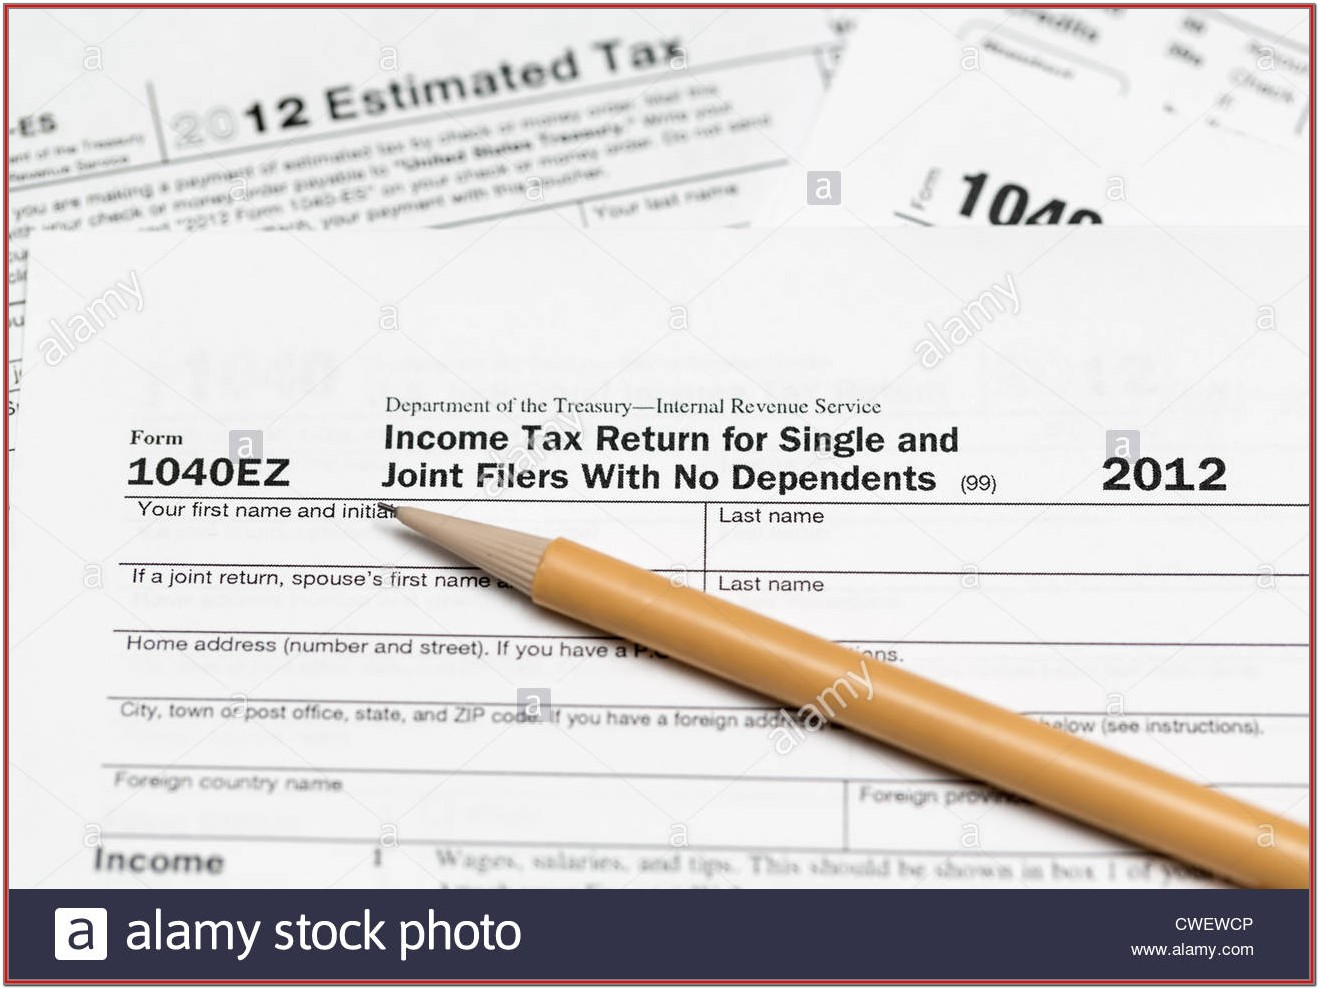 2012 Tax Return Form 1040ez